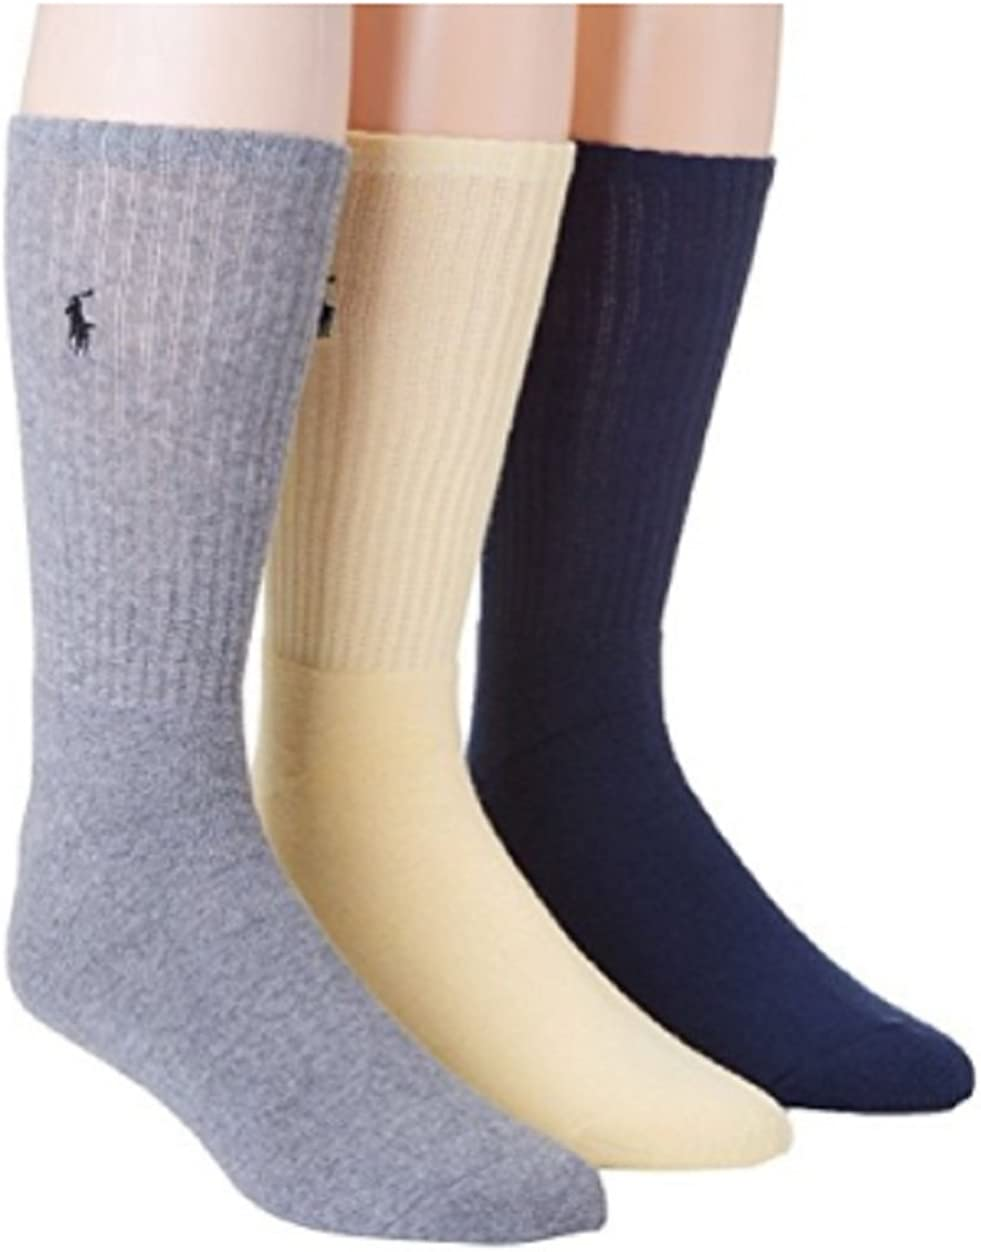 Polo Ralph Lauren 3 Pack Ribbed Cushion Foot Crew Socks Oatmeal SIZE:10-13 Assorted color